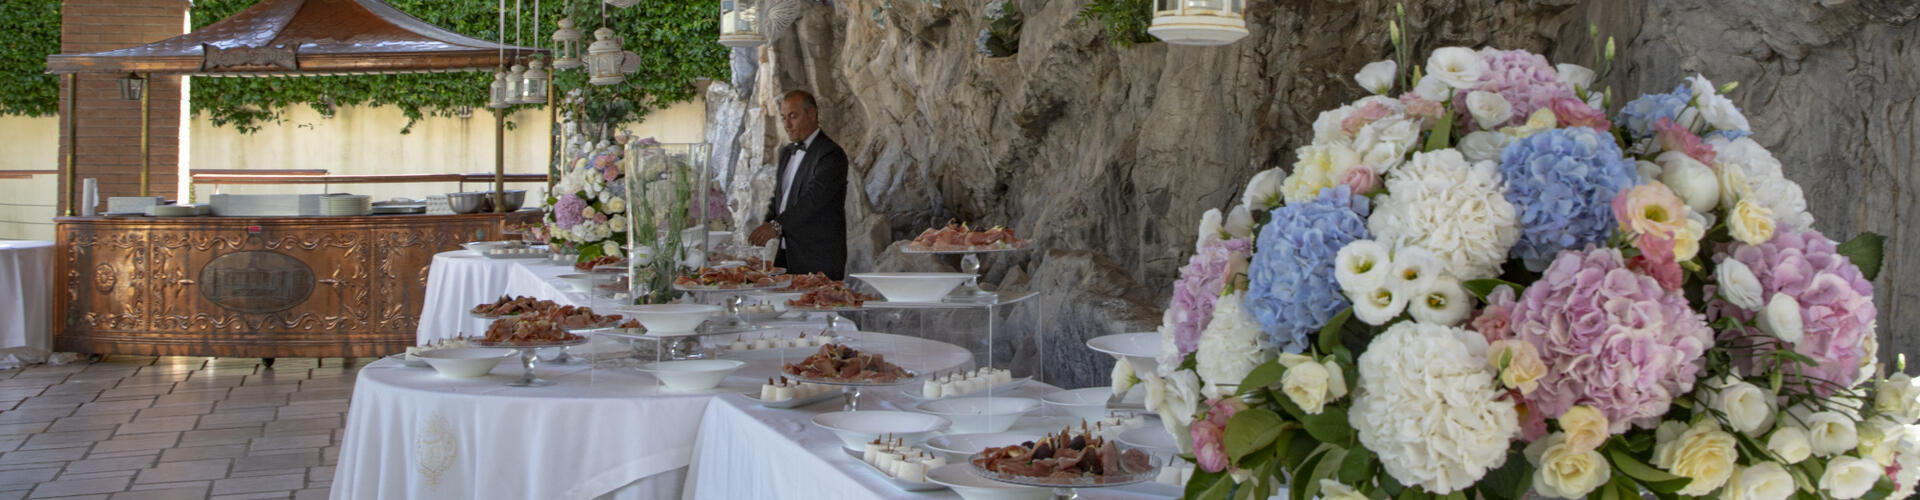 Promo of wedding menu trial as present to bride and groom with a visit to the reception halls